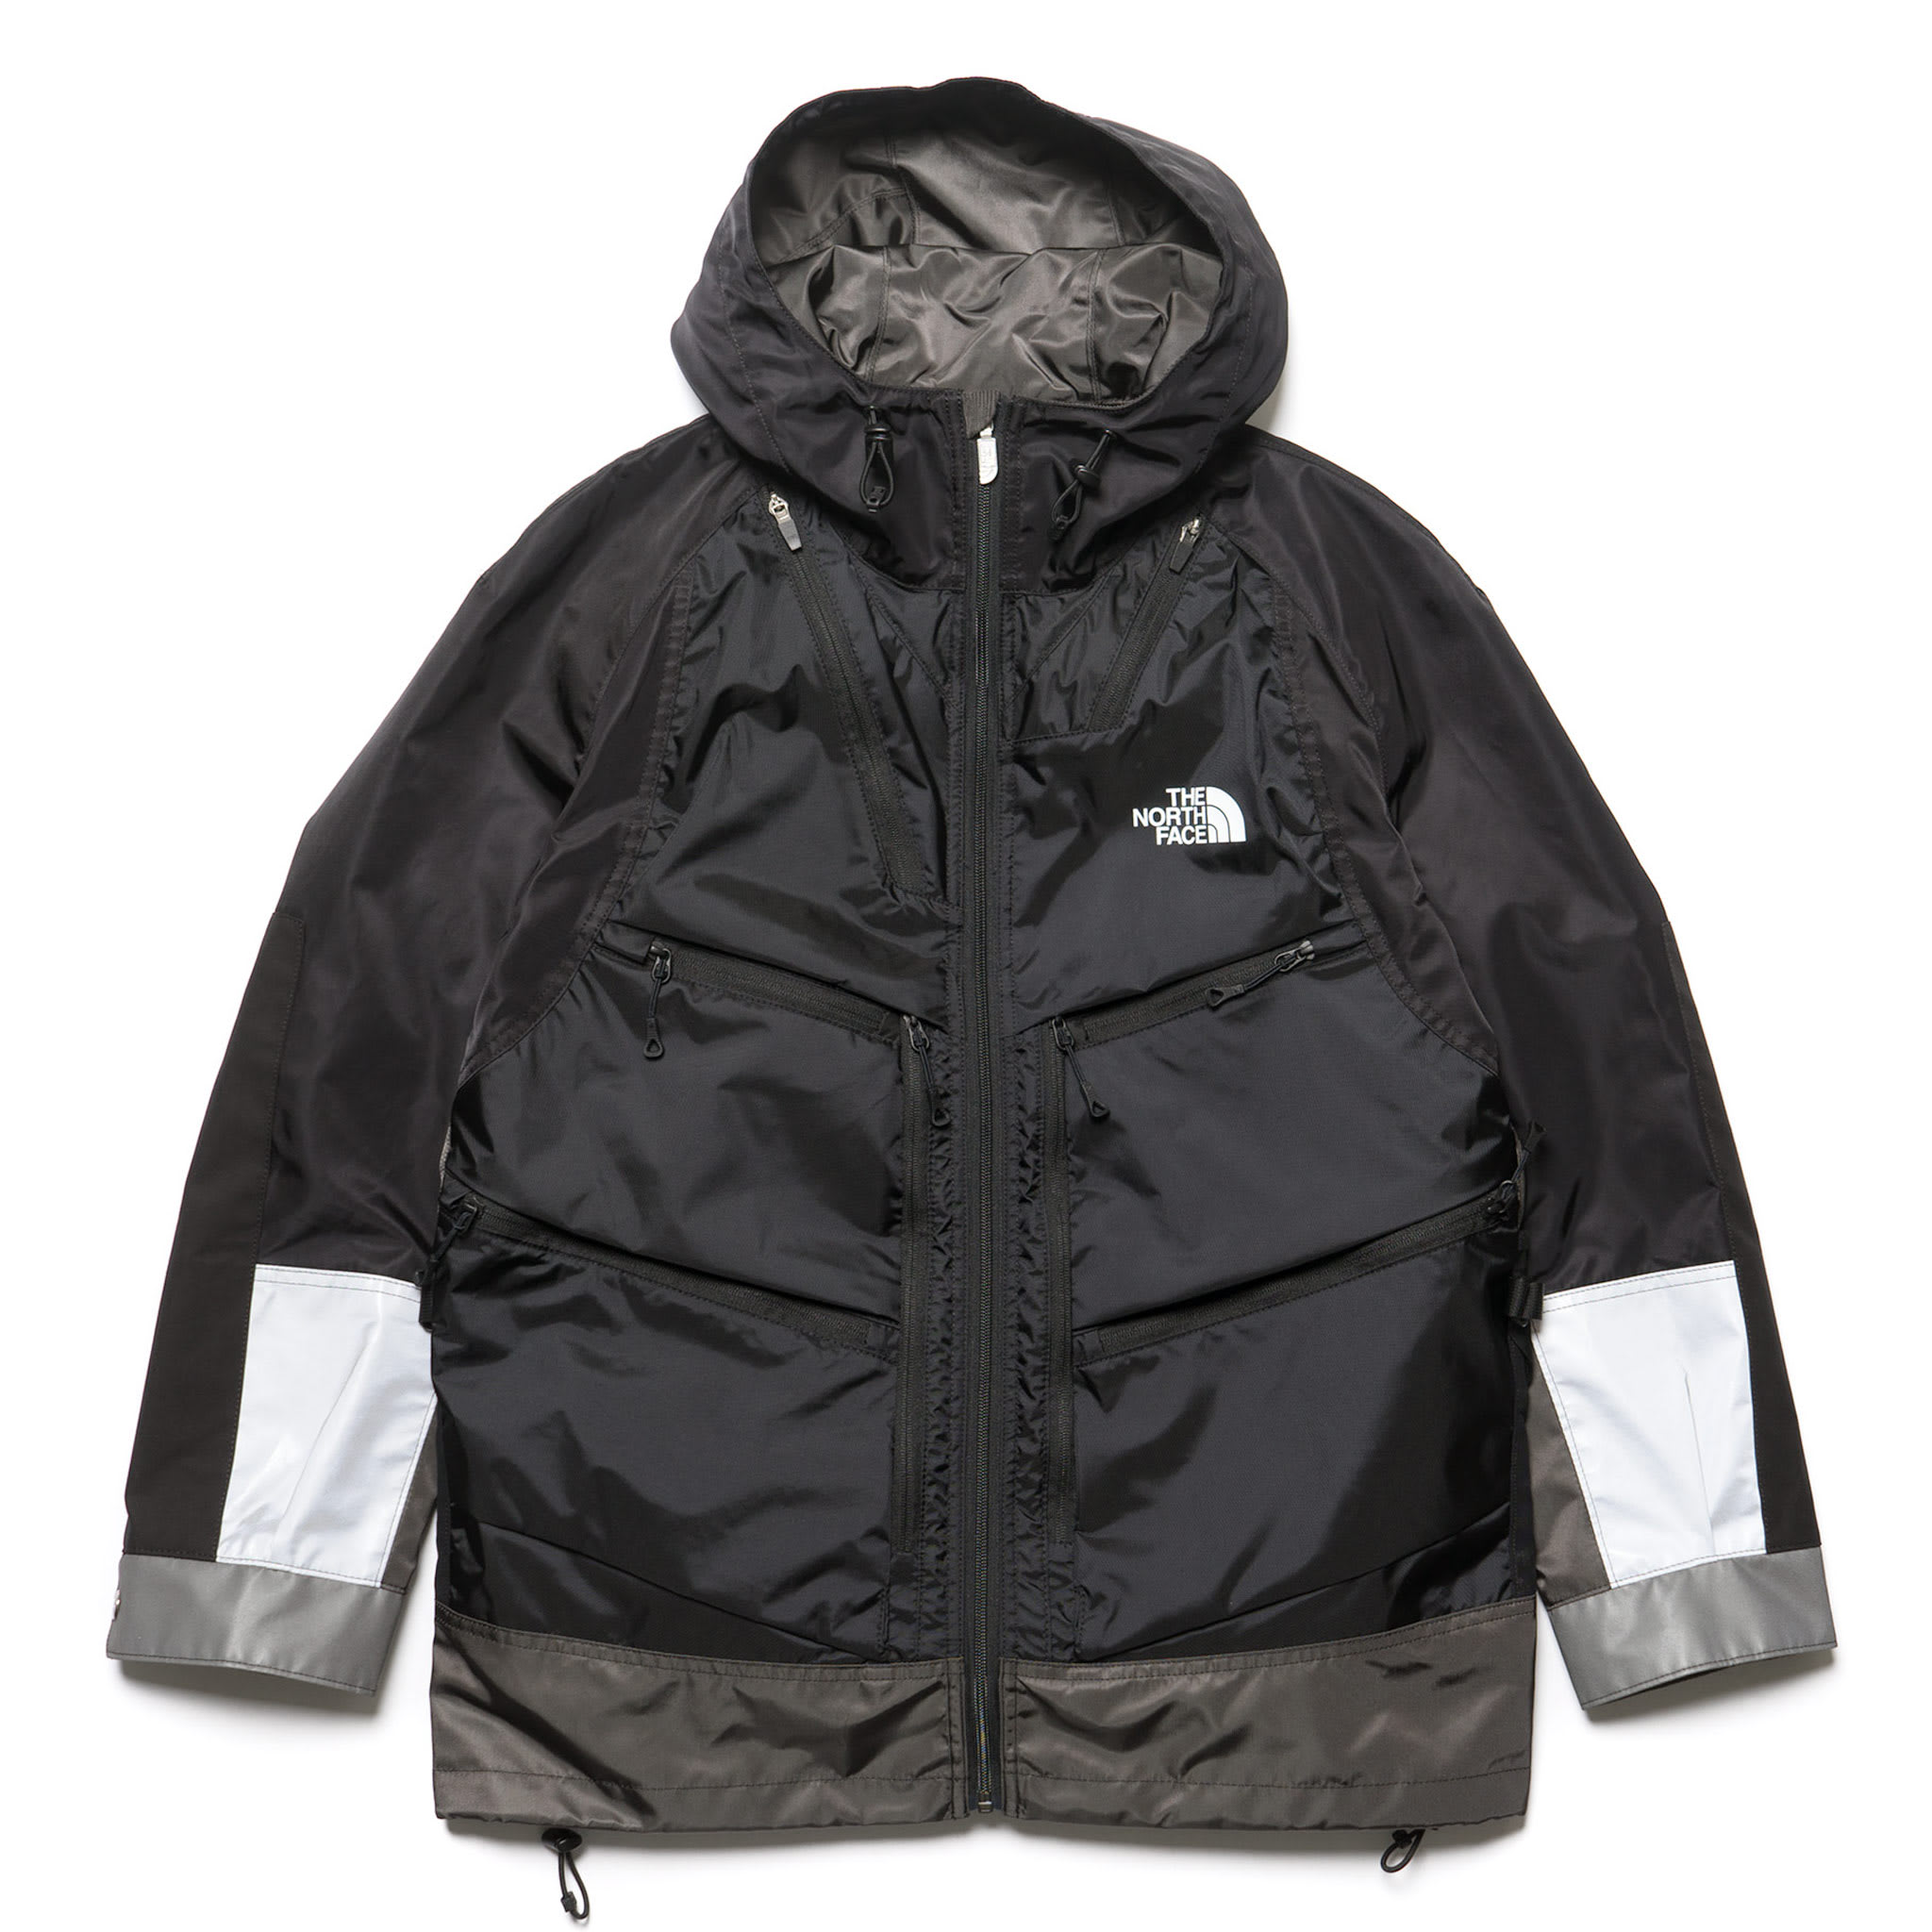 967f4e9e0 Junya Watanabe MAN Release FW18 Outwear with The North Face ...